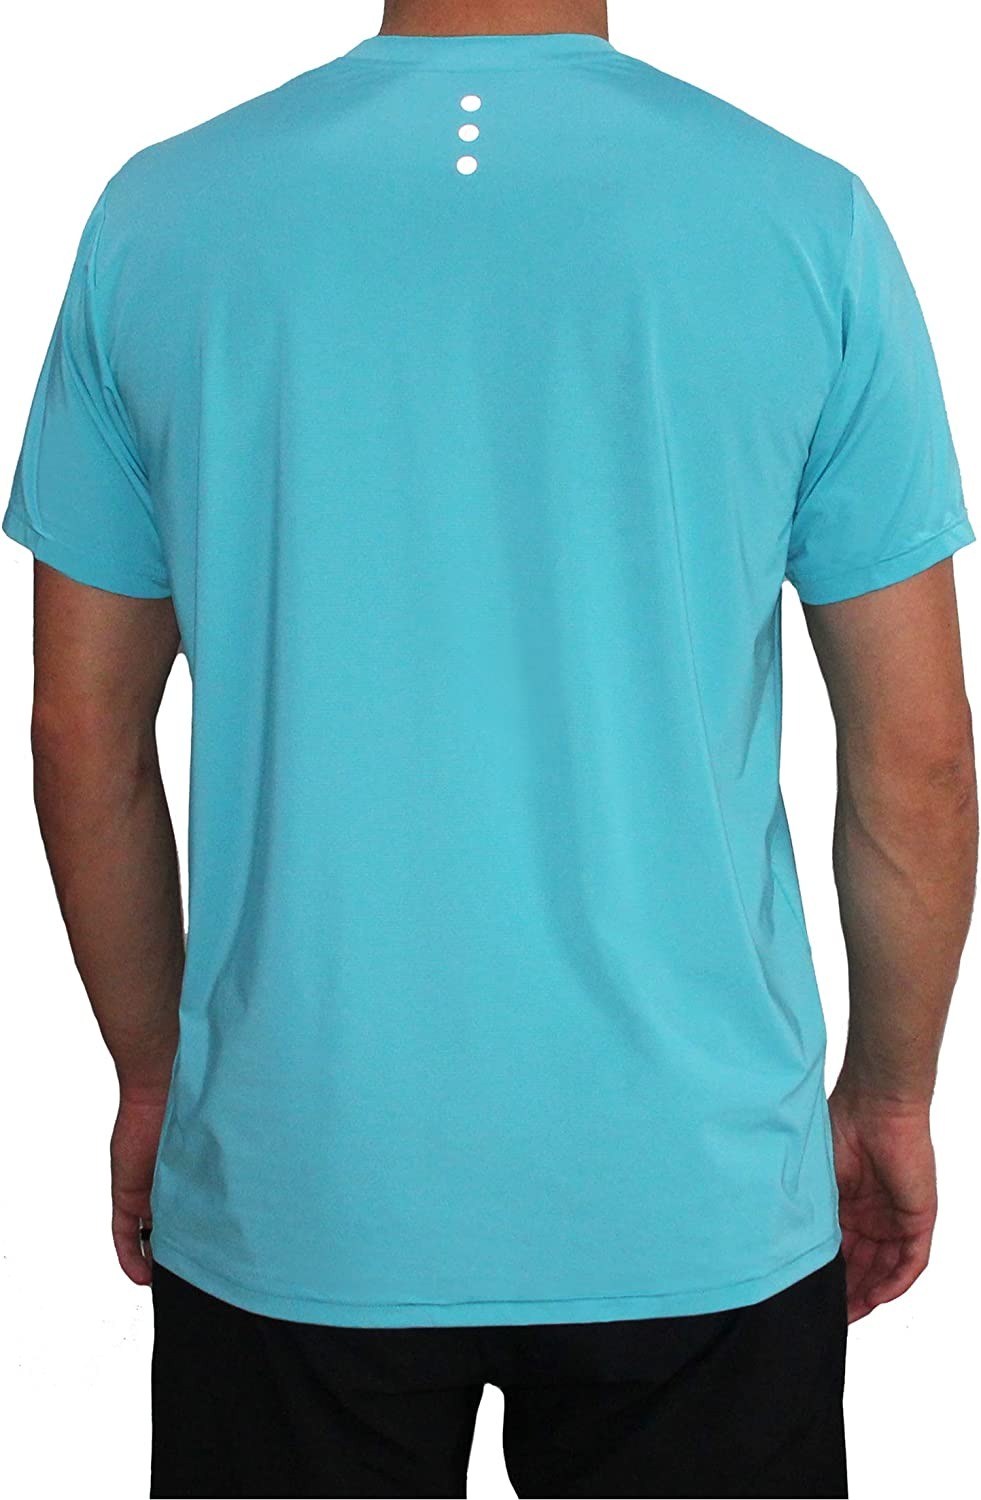 Fact/_ Activewear Mens Performance Tee w//Moisture Wicking Cool-tech Pocket for Running Crossfit